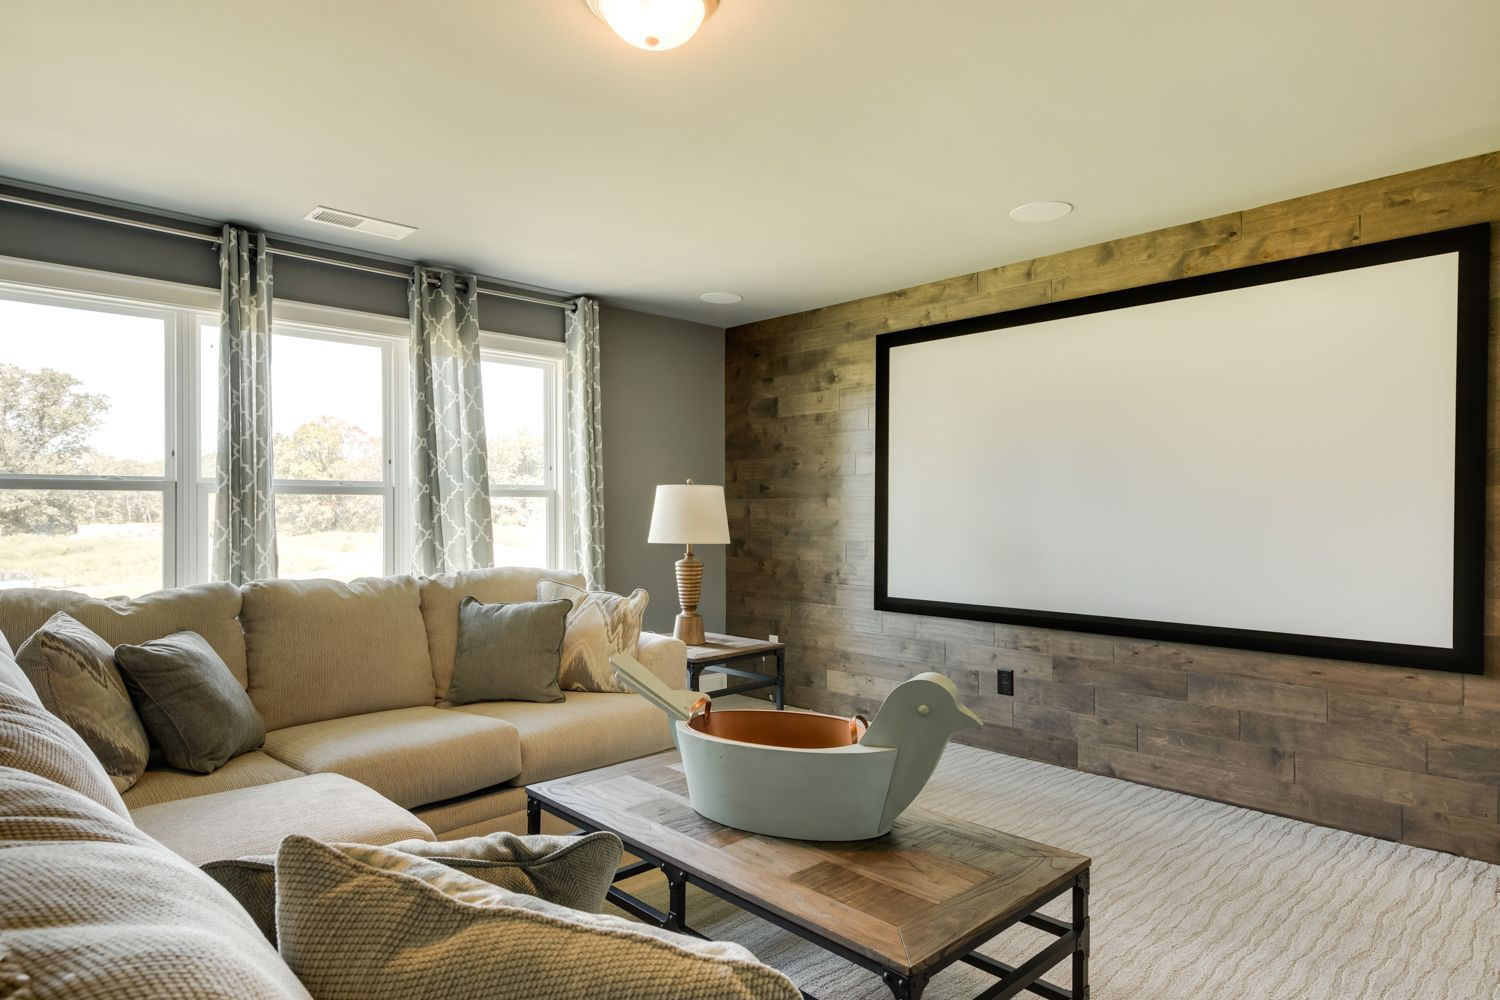 This Media Room Has A Wood Accent Wall And A Projector Screen To Create A Home Theatre This Space Is Large Yet Cozy Home Media Room Seating Home Theater Rooms